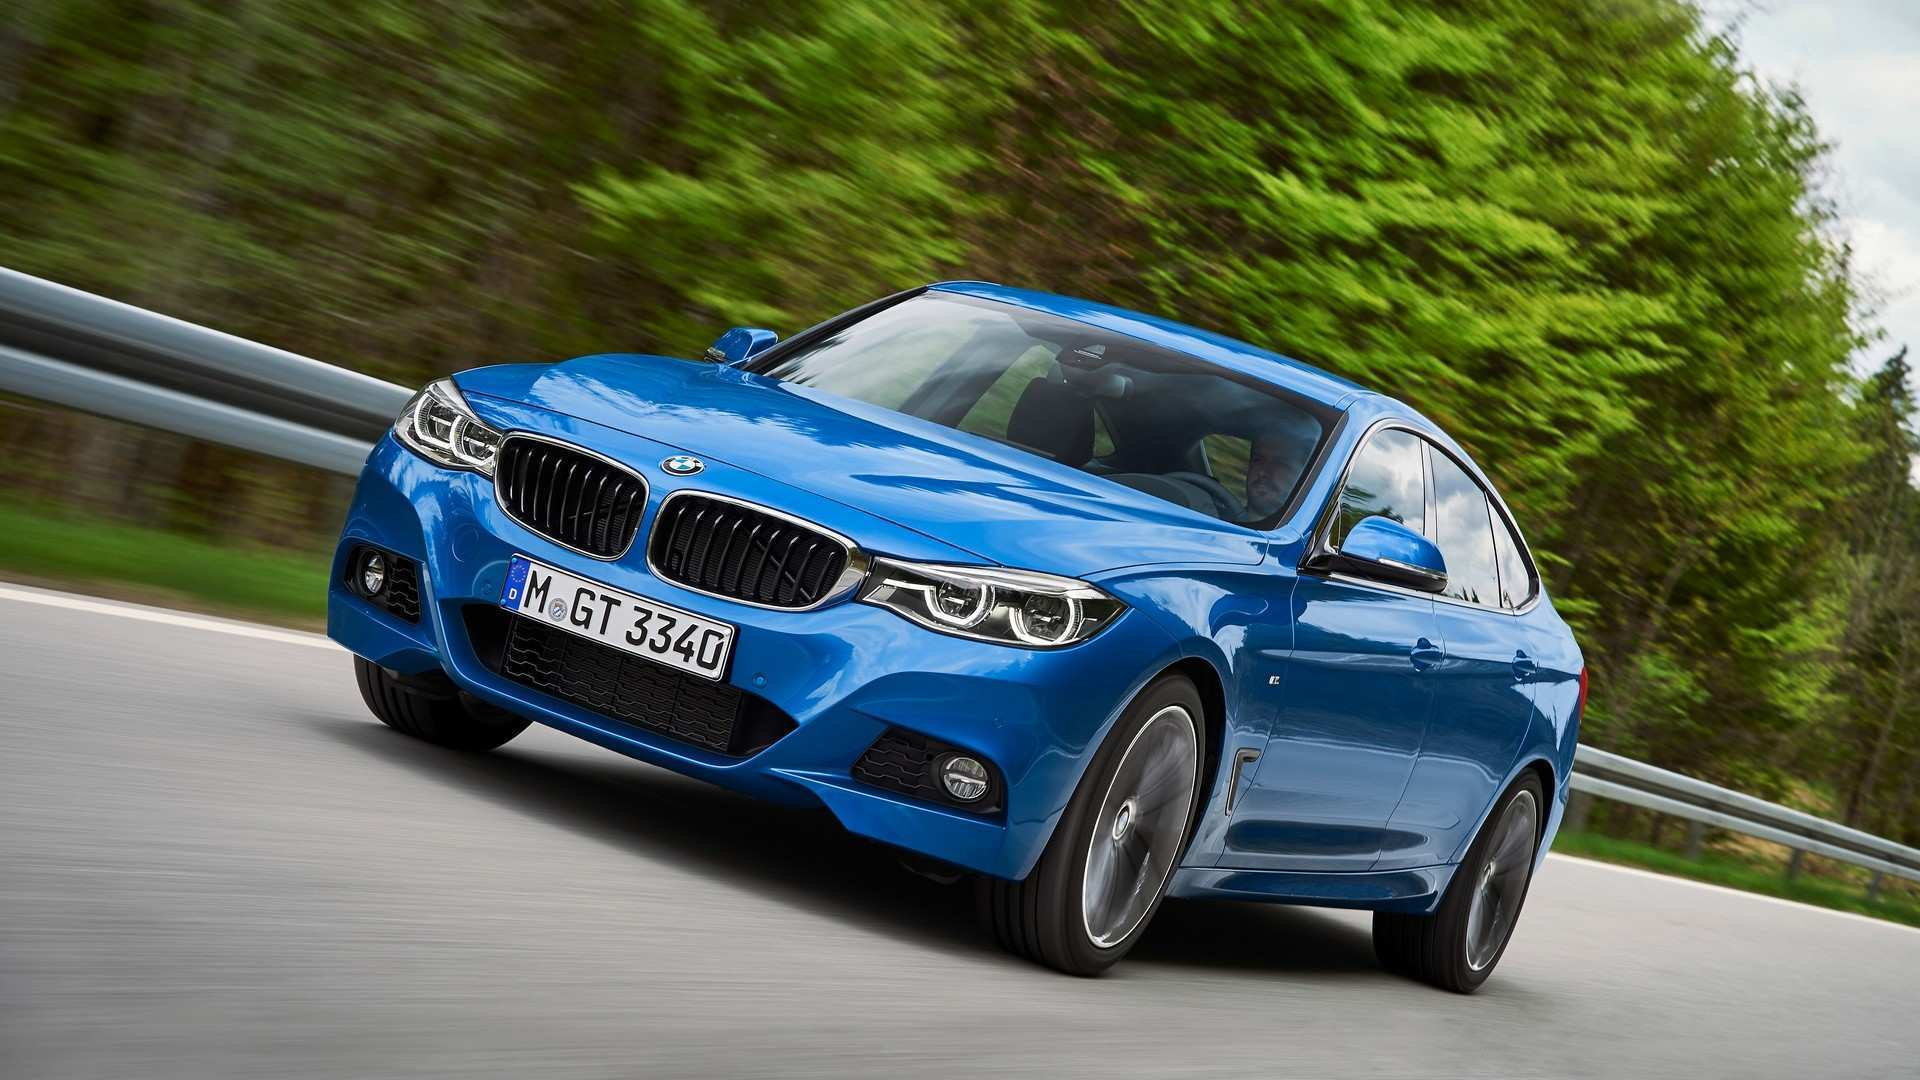 72 New Bmw 3 Gt 2020 Release Date by Bmw 3 Gt 2020